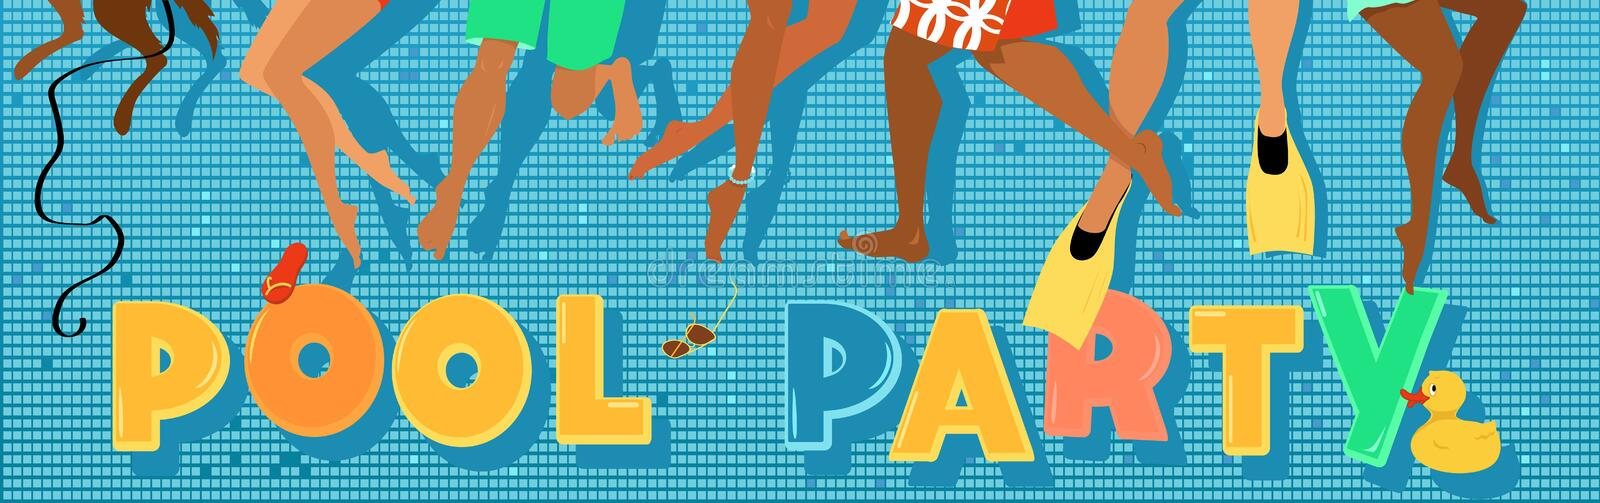 Pull party banner royalty free illustration